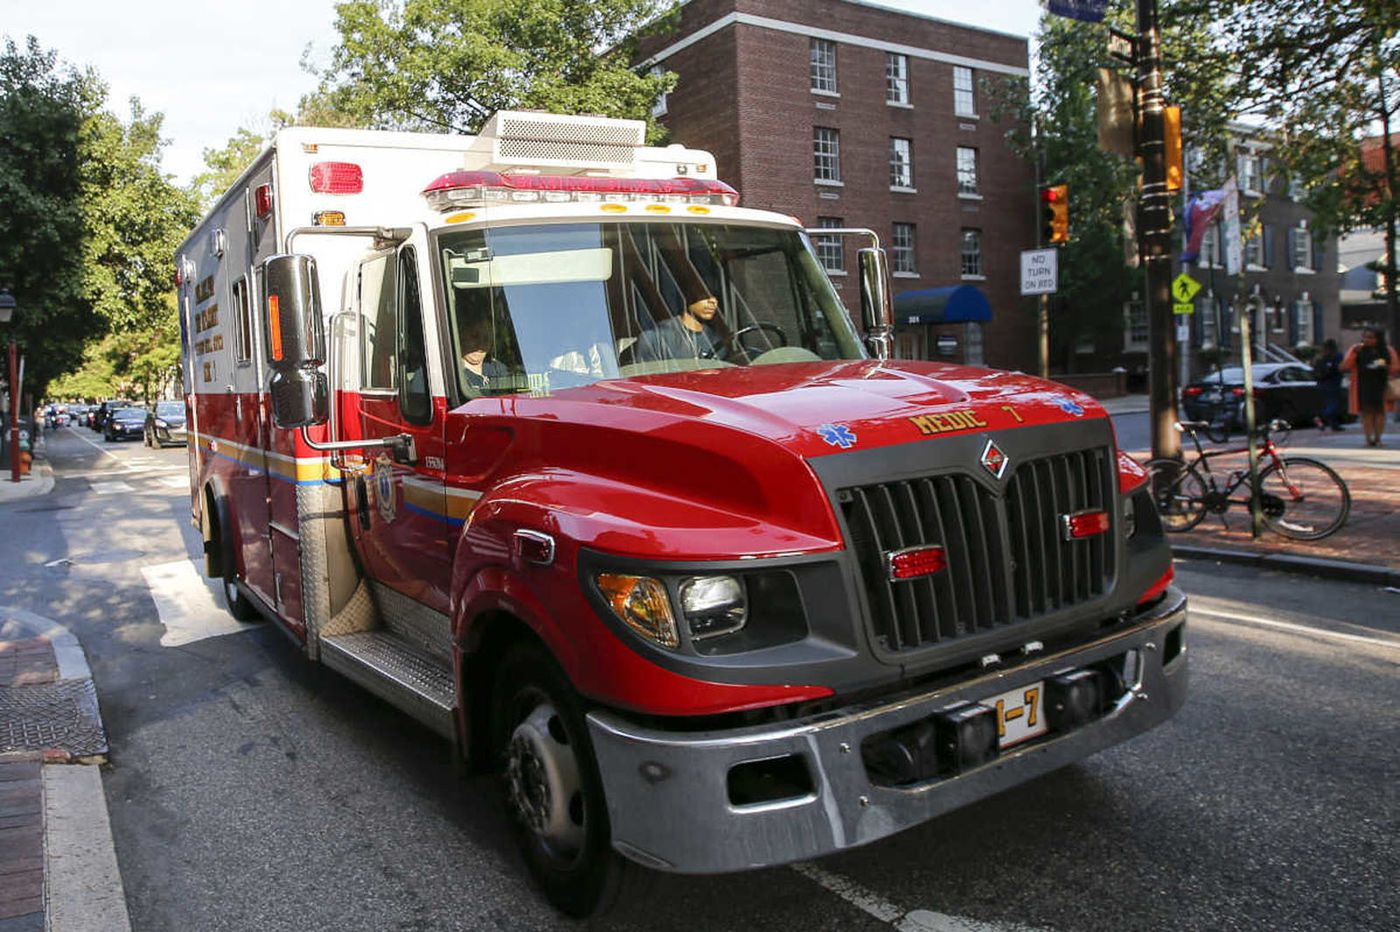 Barricaded man turns on oxygen tanks in Philly hospital room, sets fire to bedsheets, police say